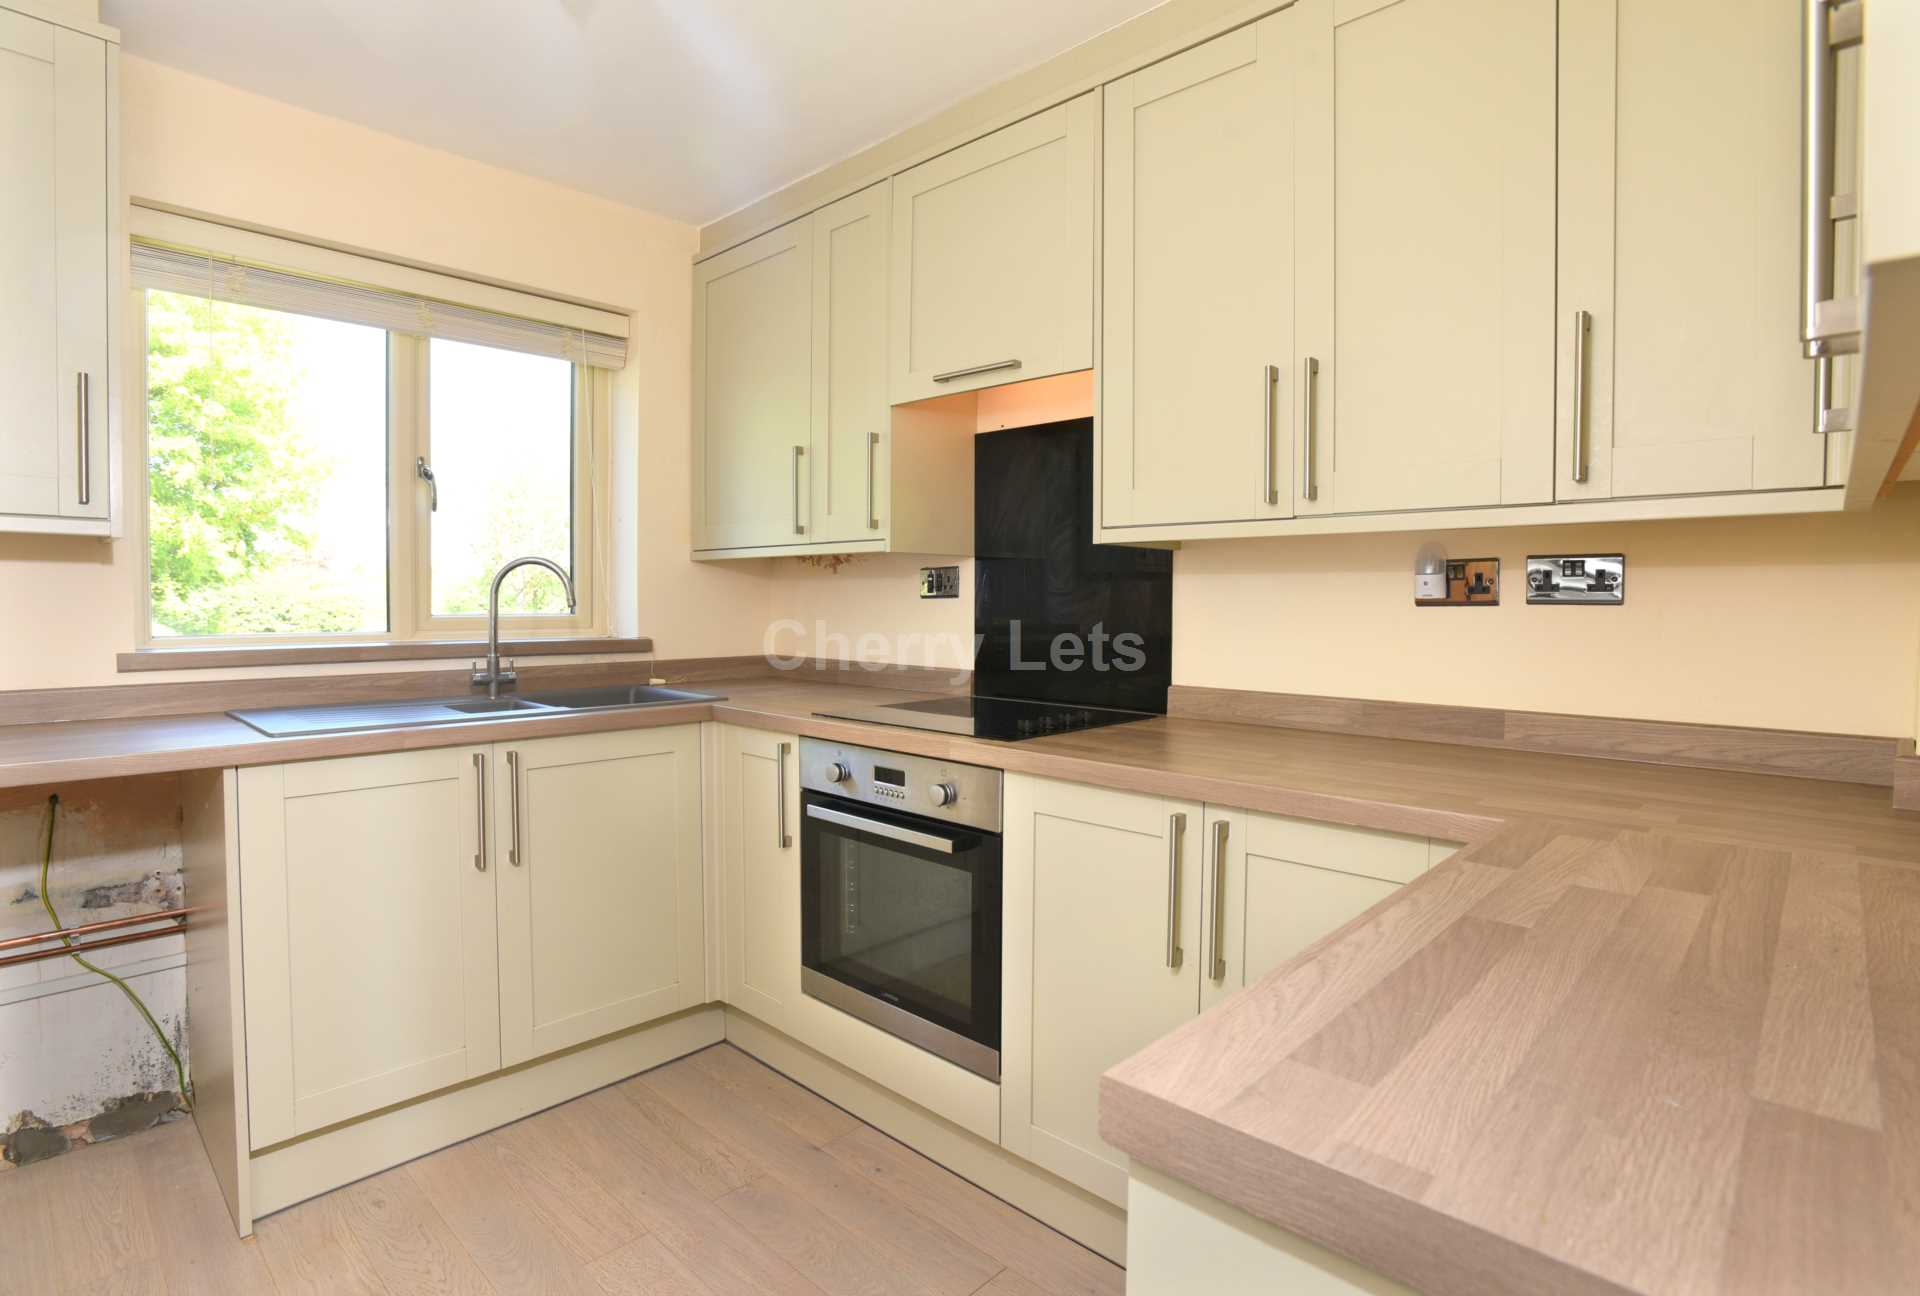 3 bed terraced house to rent in Keytes Close, Adderbury, OX17 1